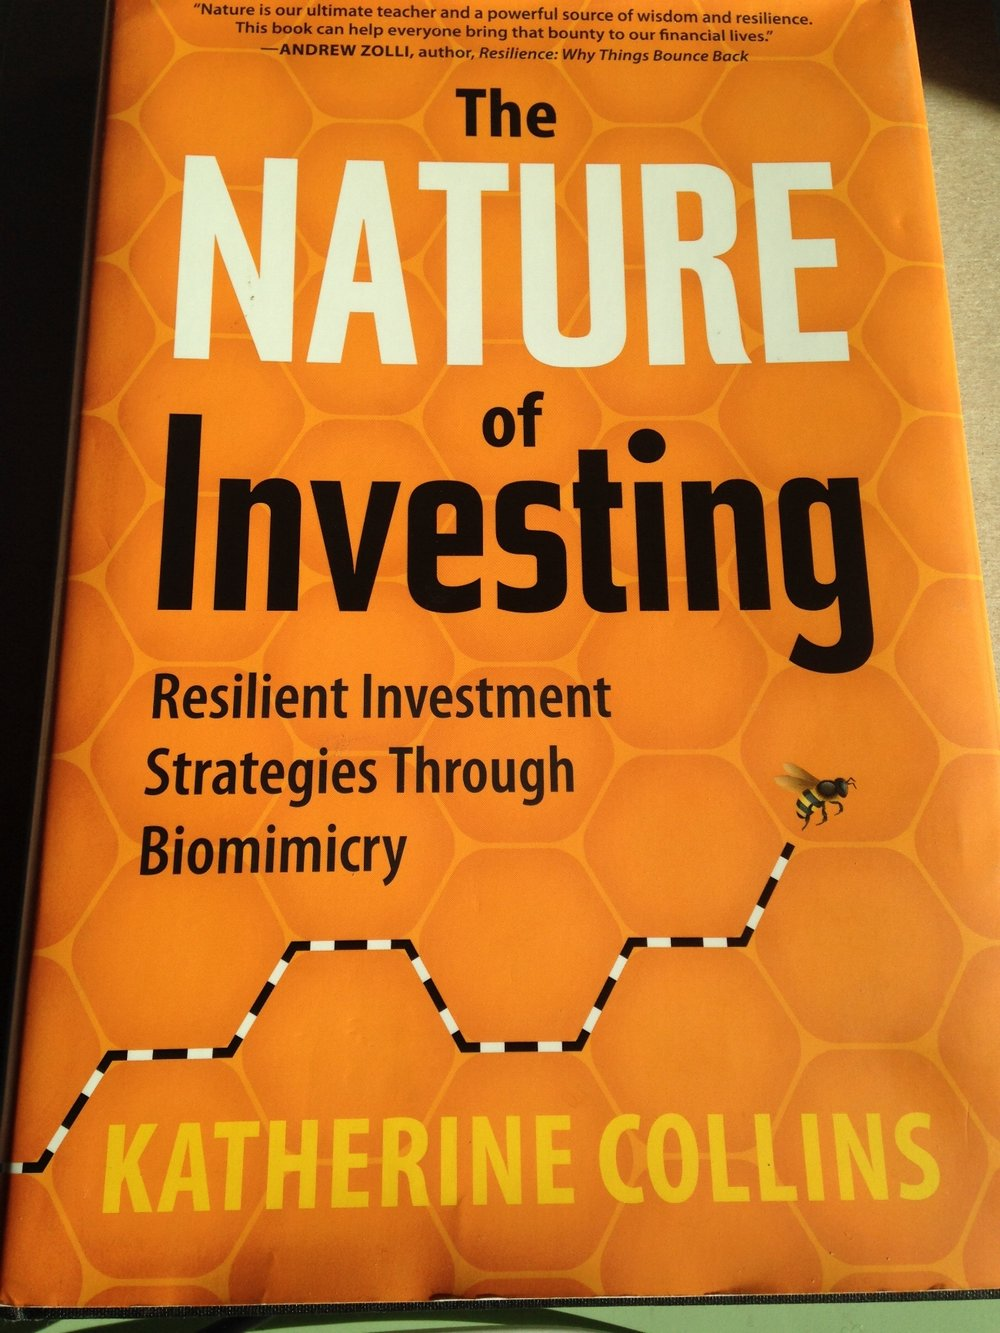 Katherine Collins brings tremendous insight into investing.  Check her out at Honeybee Capital. www.honeybeecap.com